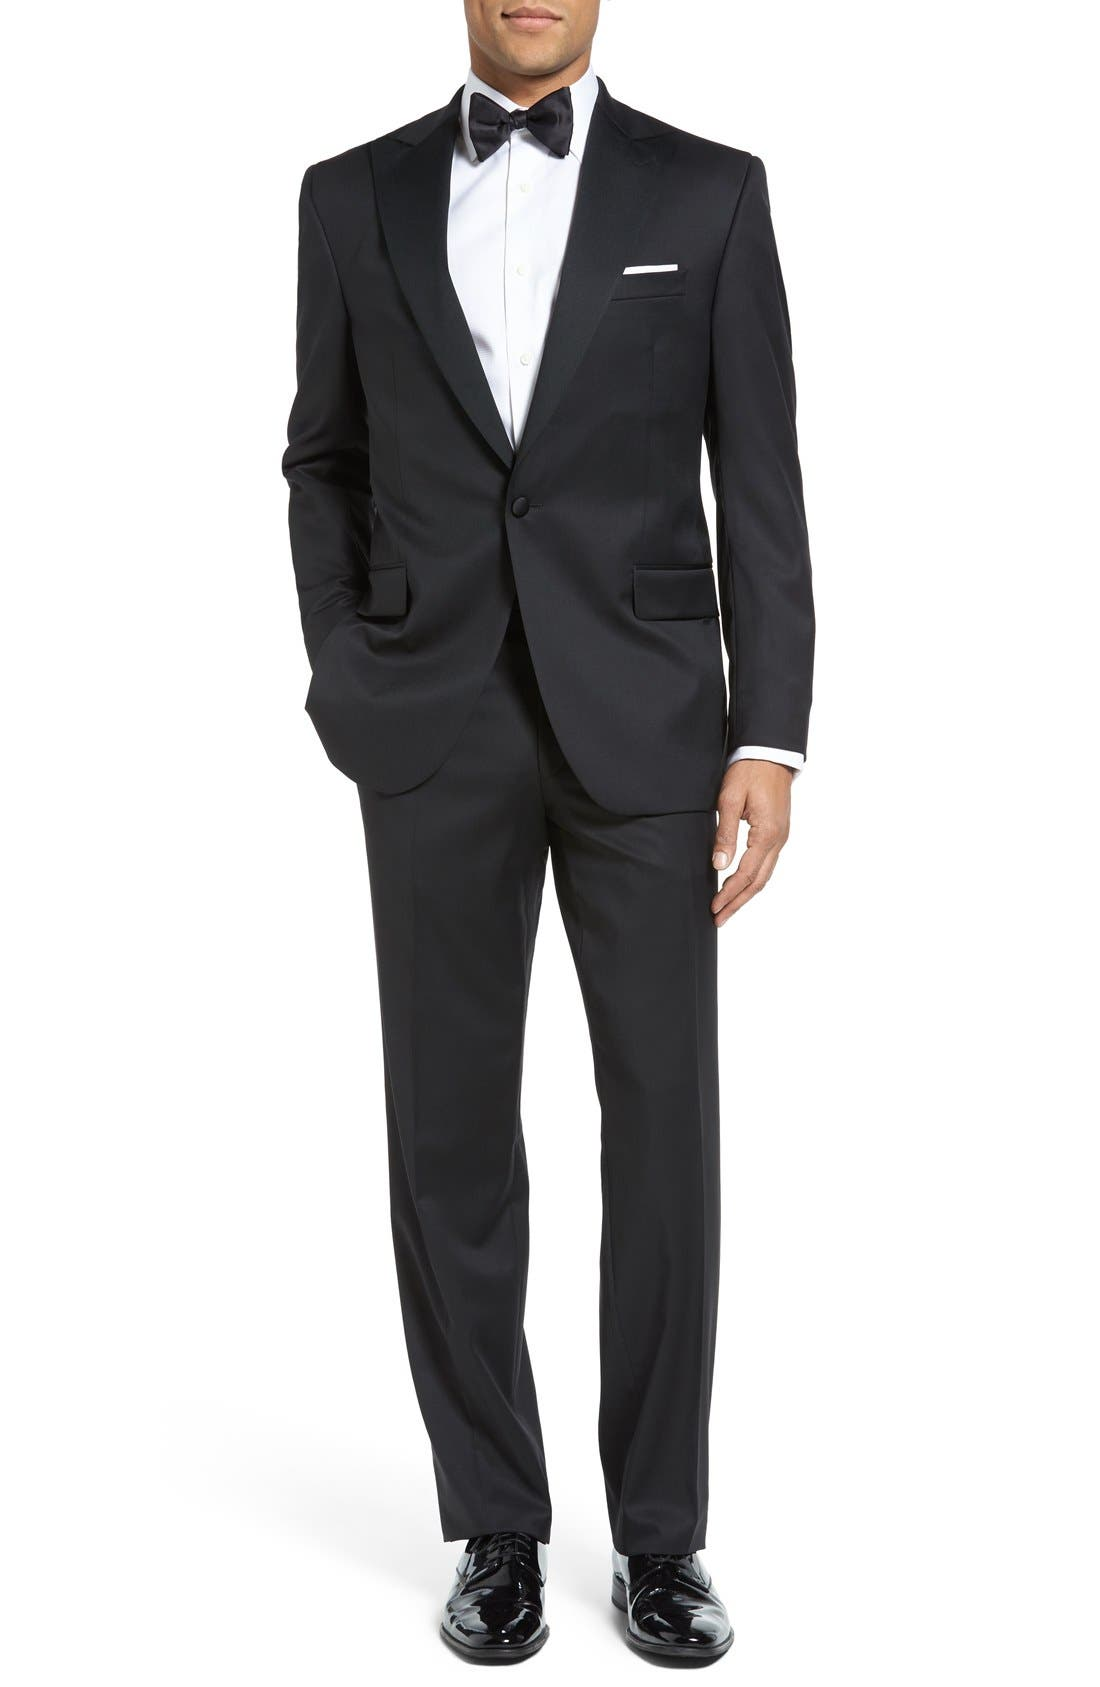 Main Image - David Donahue Russell Classic Fit Loro Piana Wool Tuxedo